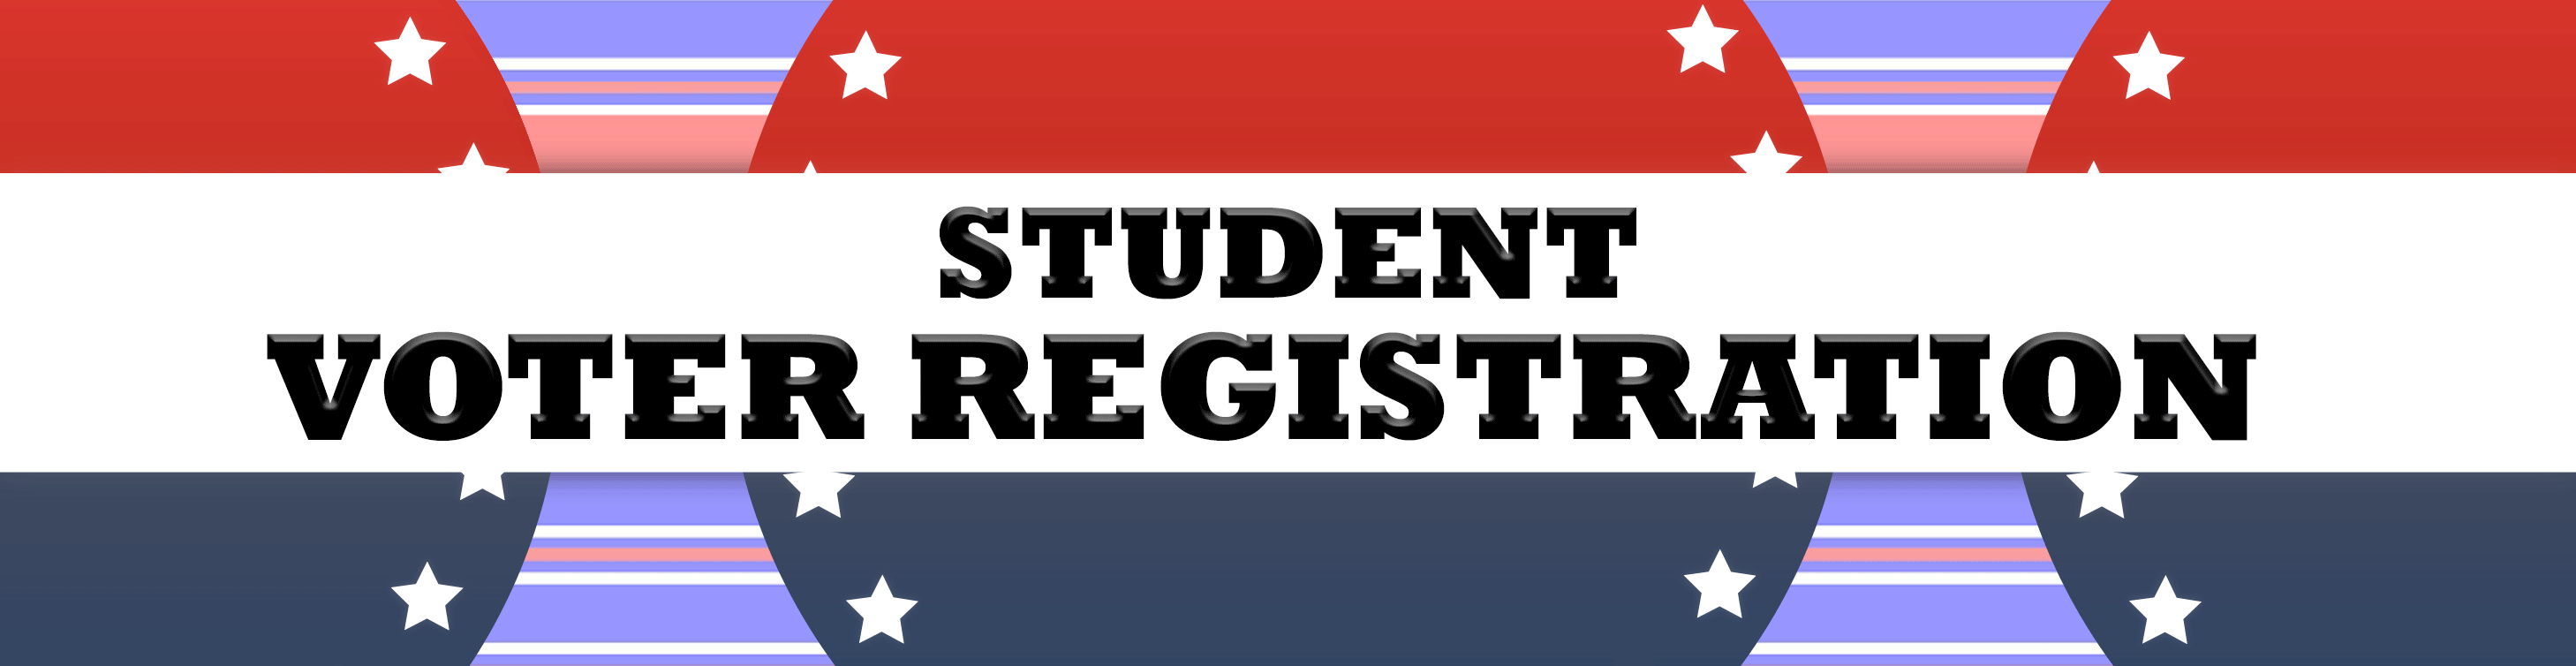 Student Voter Registration